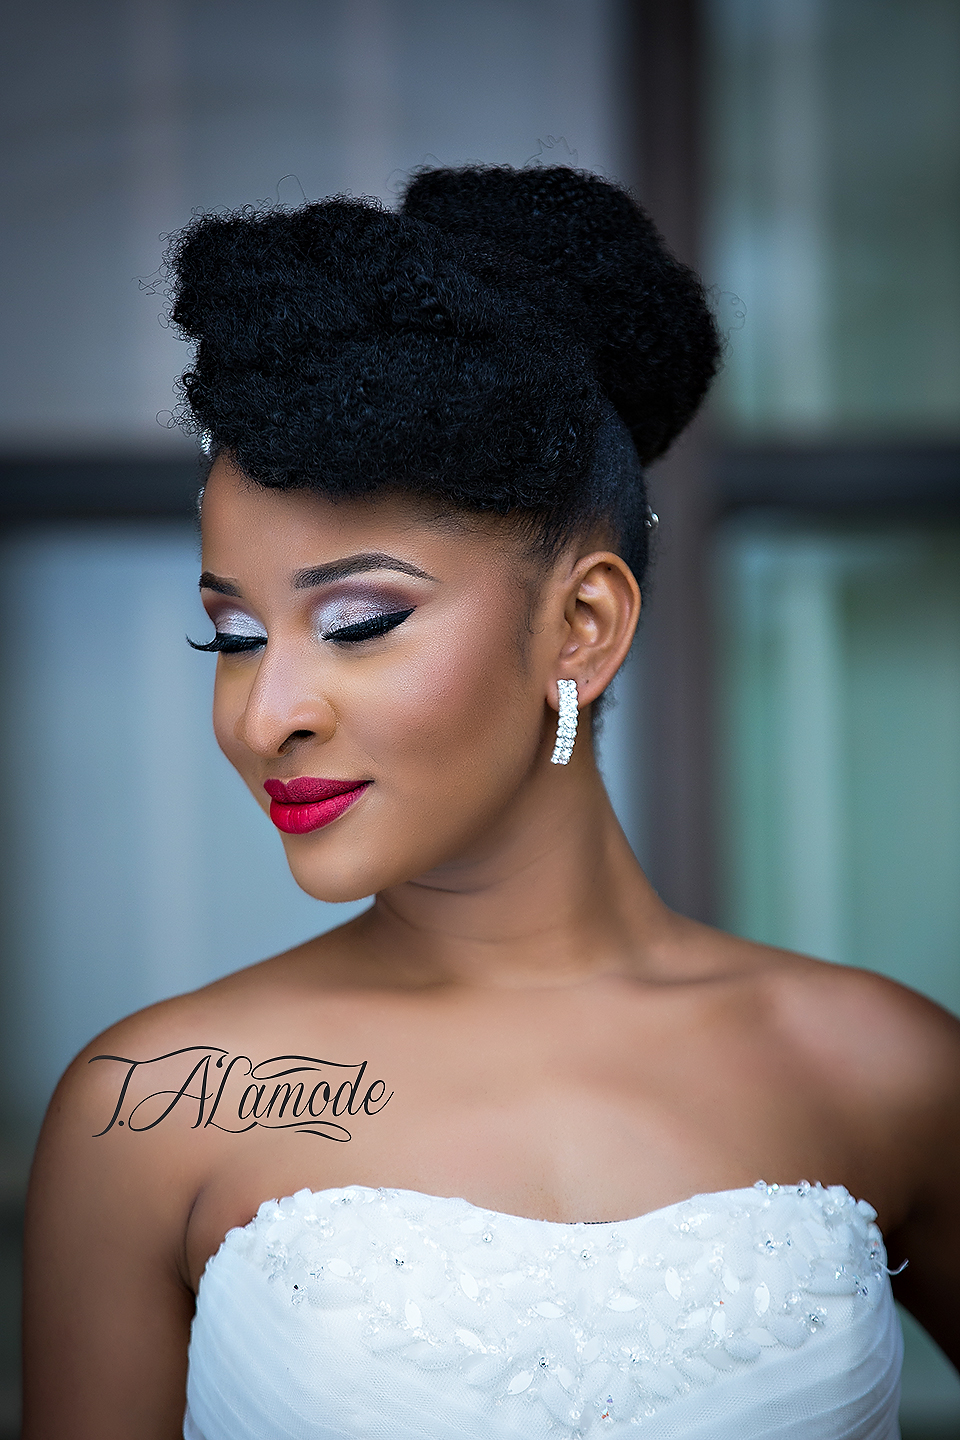 Wedding Makeup Looks For Black Hair : Striking Natural Hair Looks for the 2015 Bride! T.Alamode ...